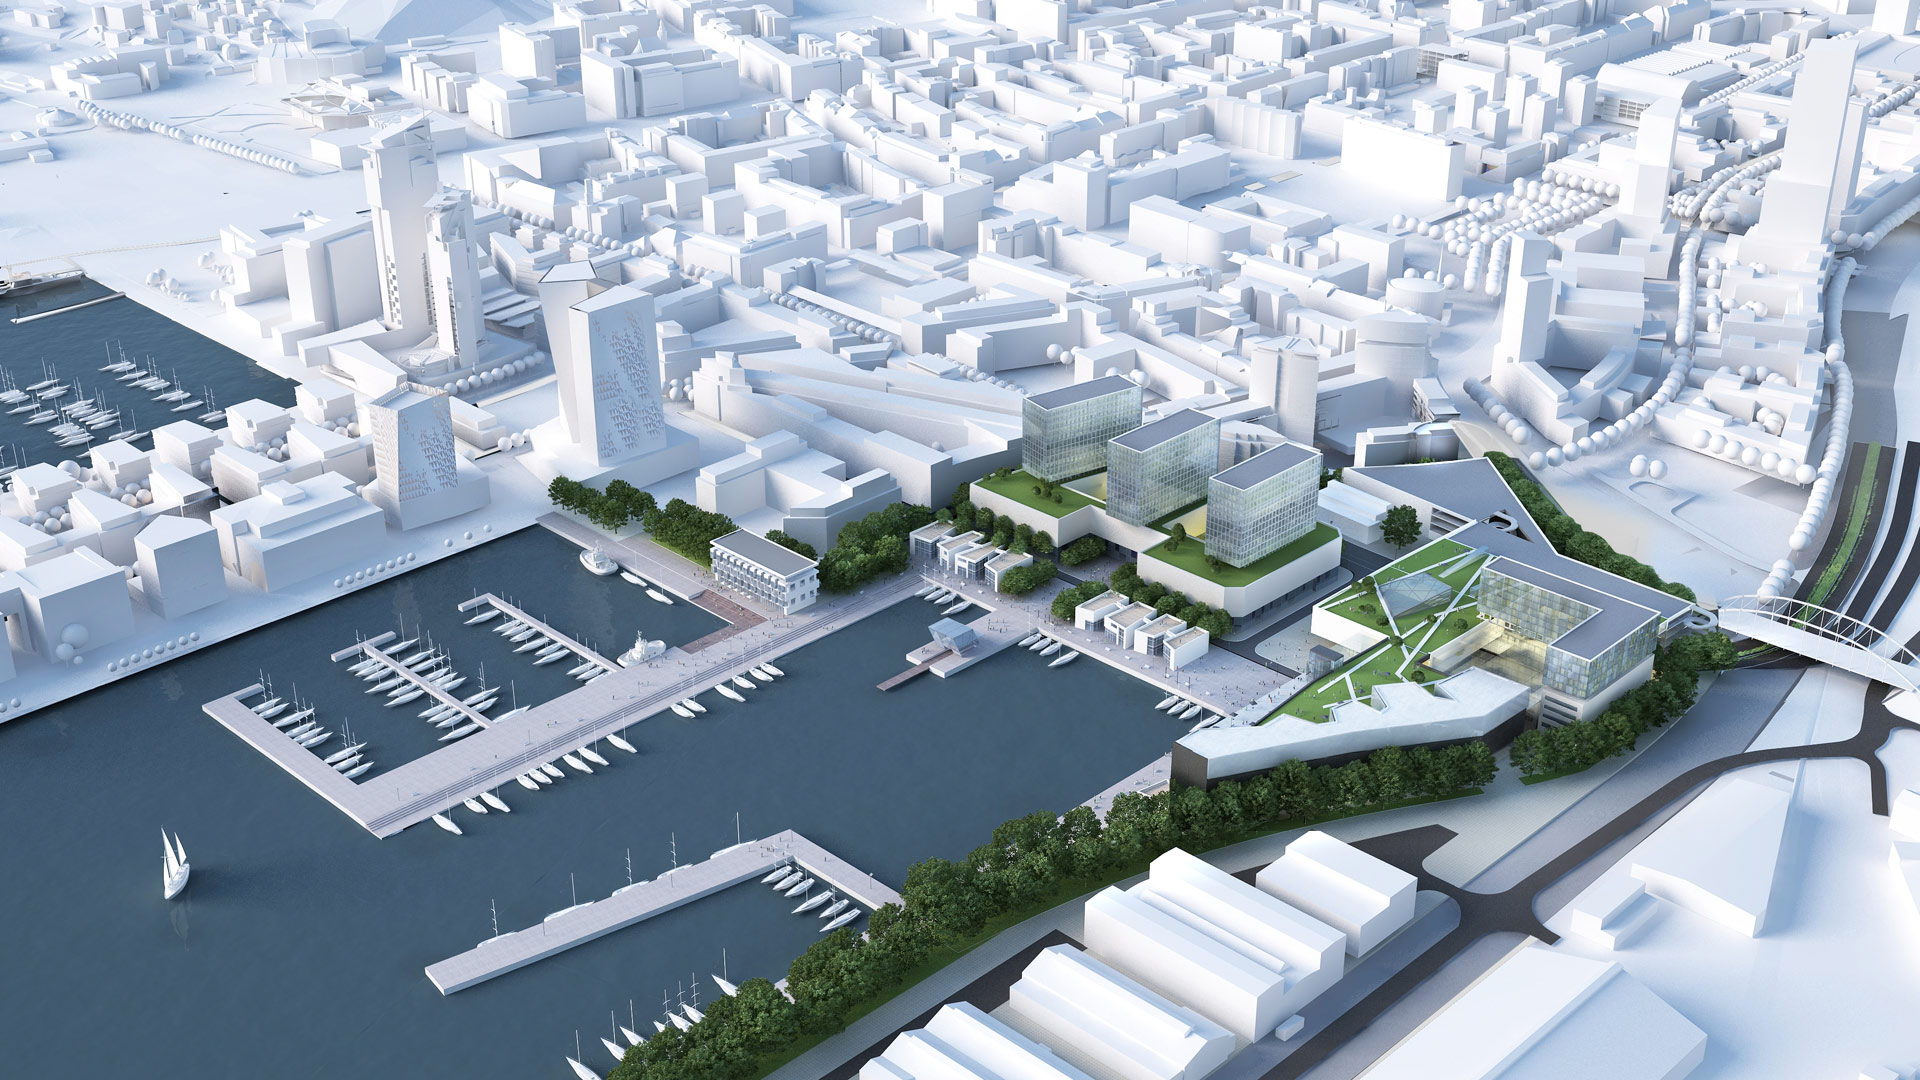 Gdynia and Nauta will jointly build roads